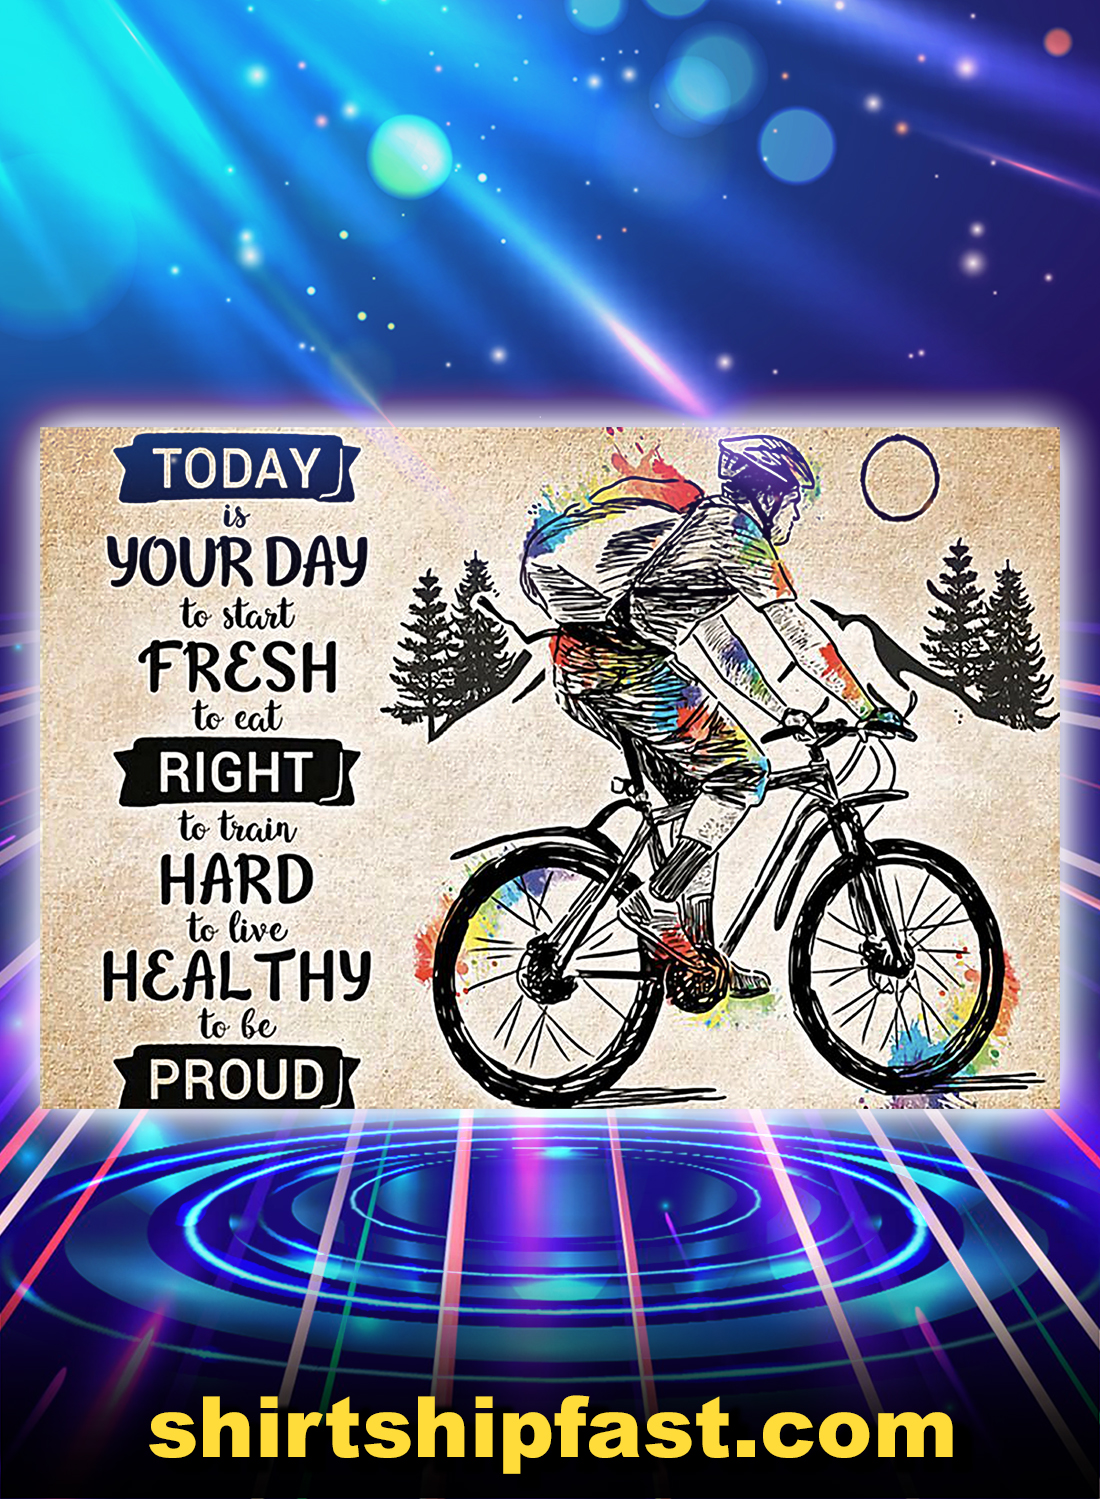 Cycling heathy to be proud poster - A4